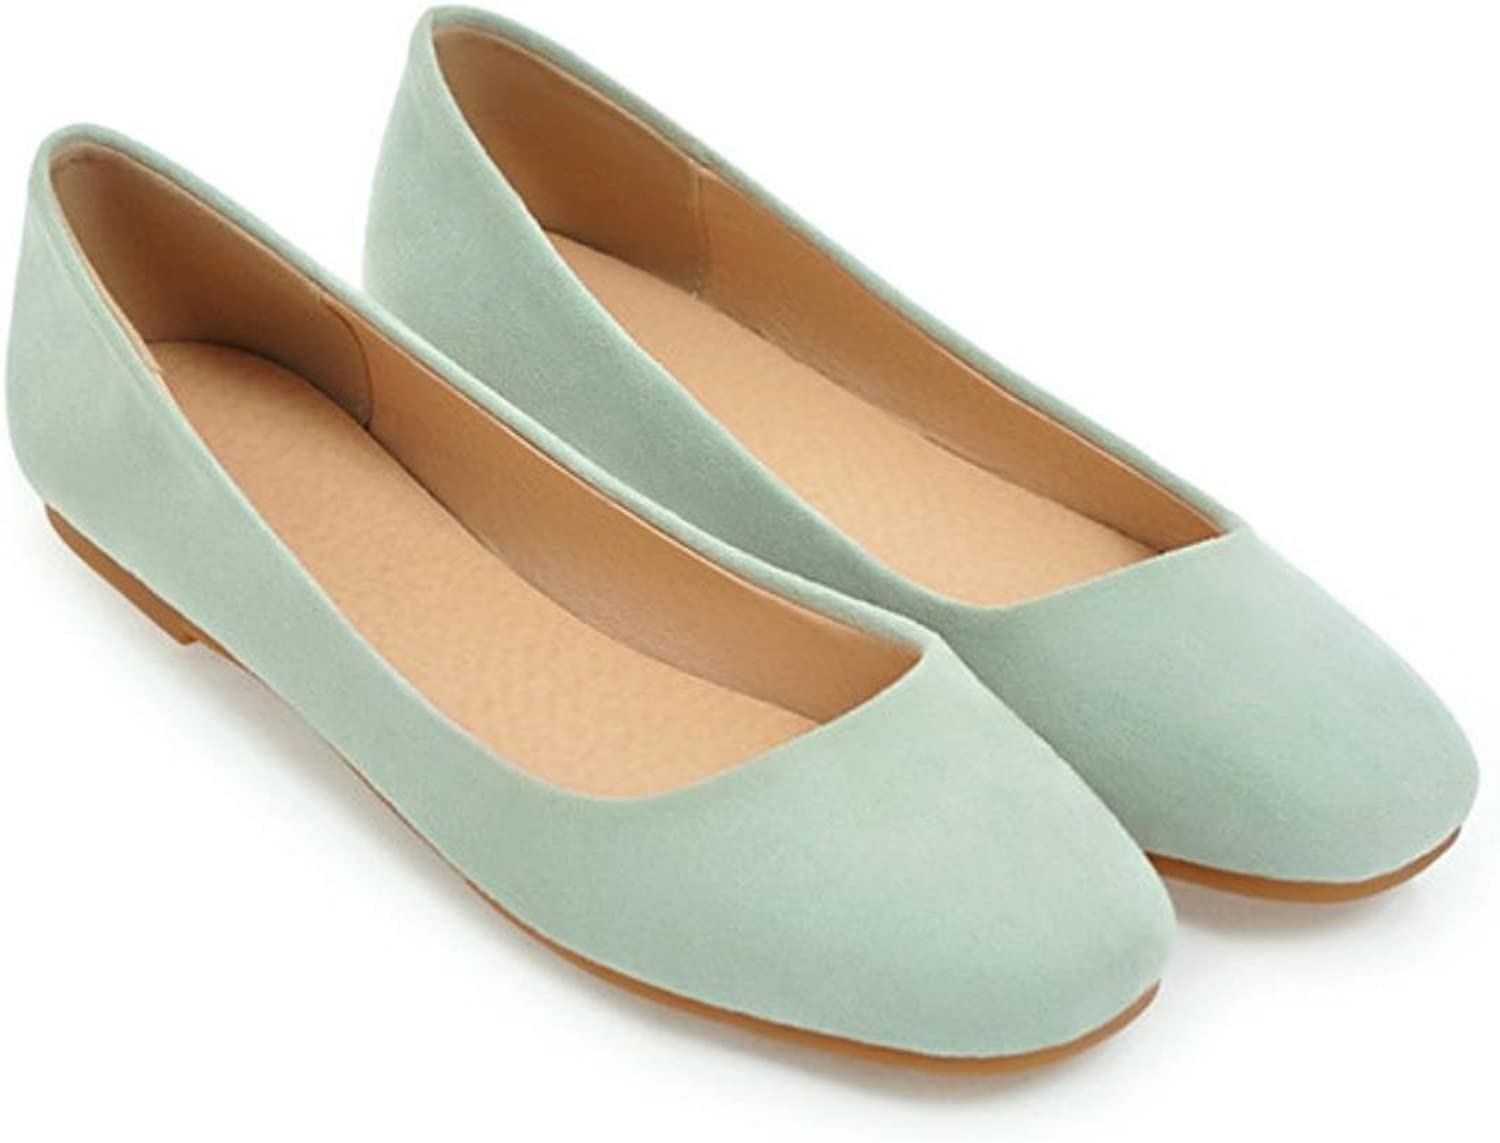 Meotina Women Ballet shoes Flats Slip On Casual shoes Spring Square Toe Boat shoes Ladies